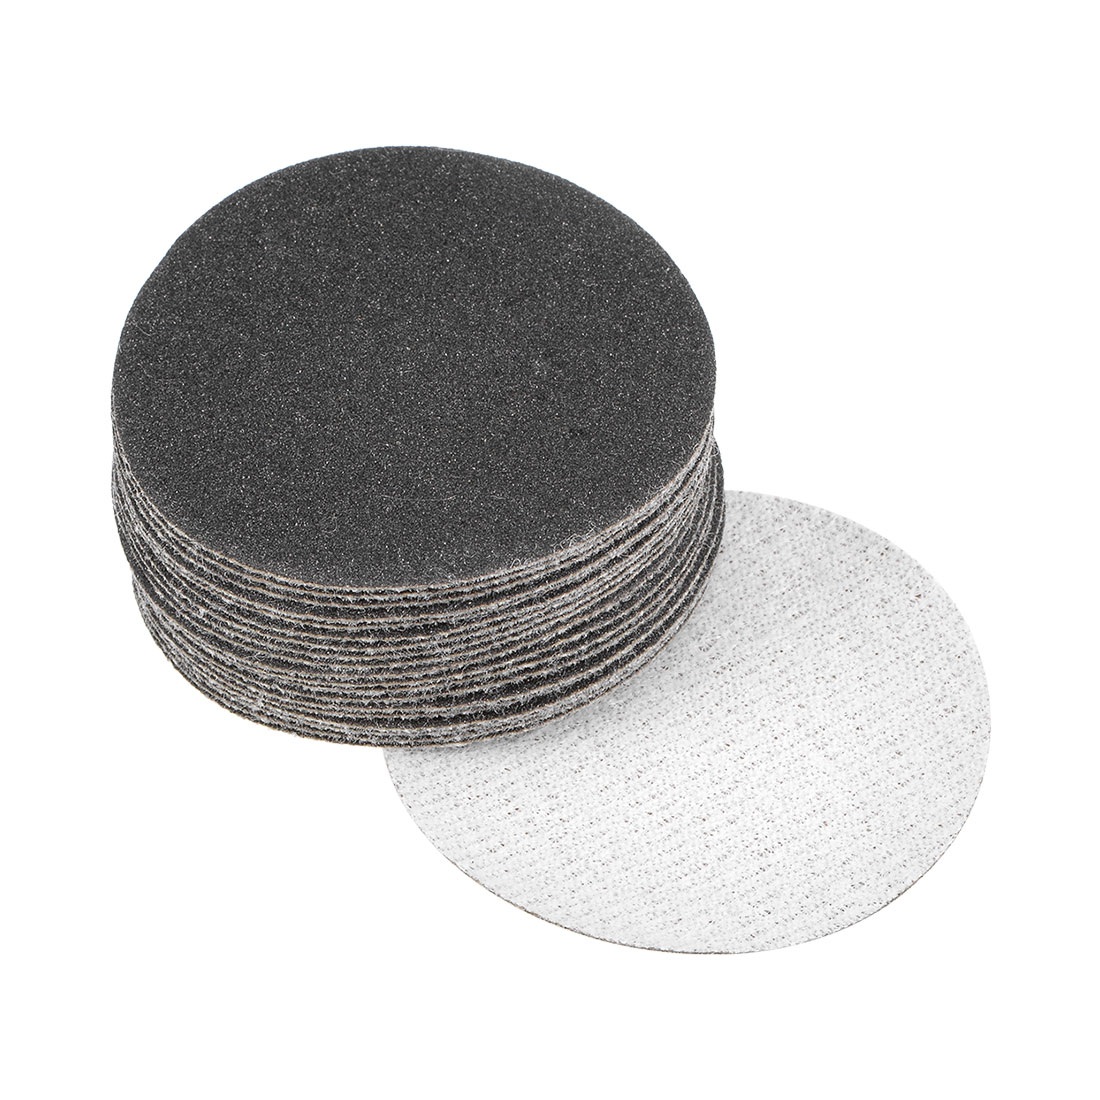 2 inch Wet Dry Discs 180 Grit Hook and Loop Sanding Disc Silicon Carbide 20pcs